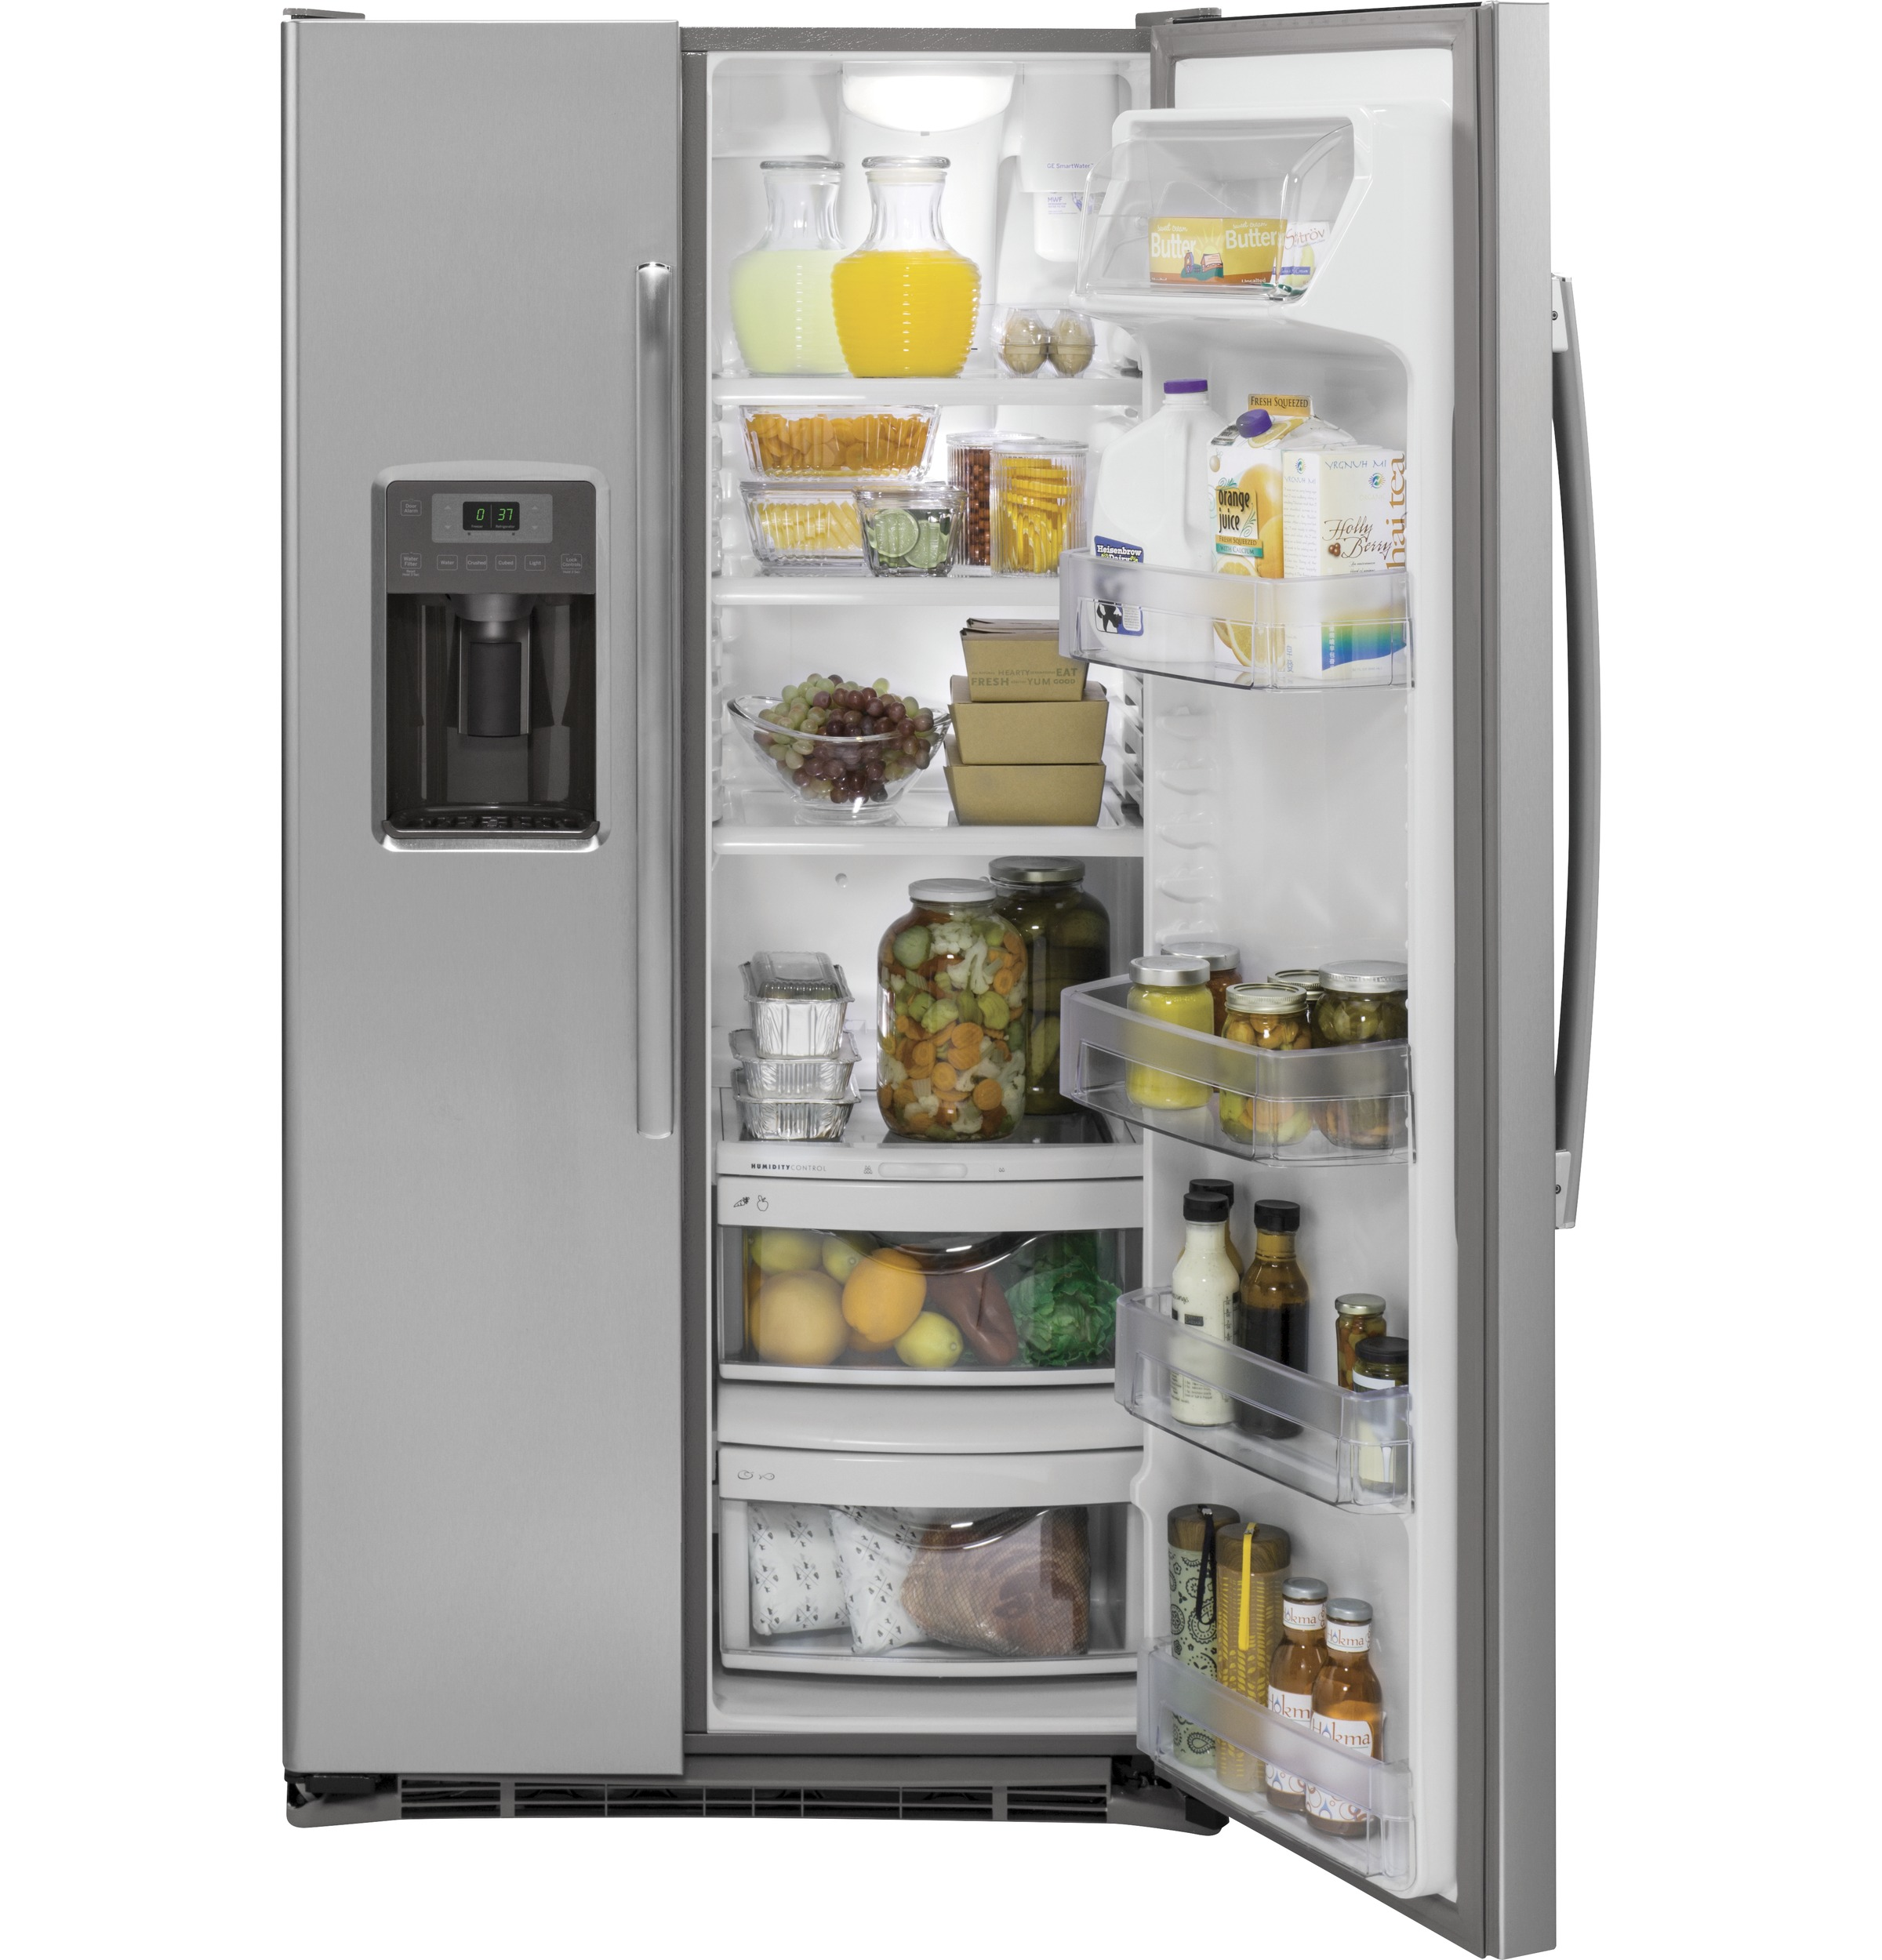 Model: GZS22DSJSS | GE GE® 21.9 Cu. Ft. Counter-Depth Side-By-Side Refrigerator